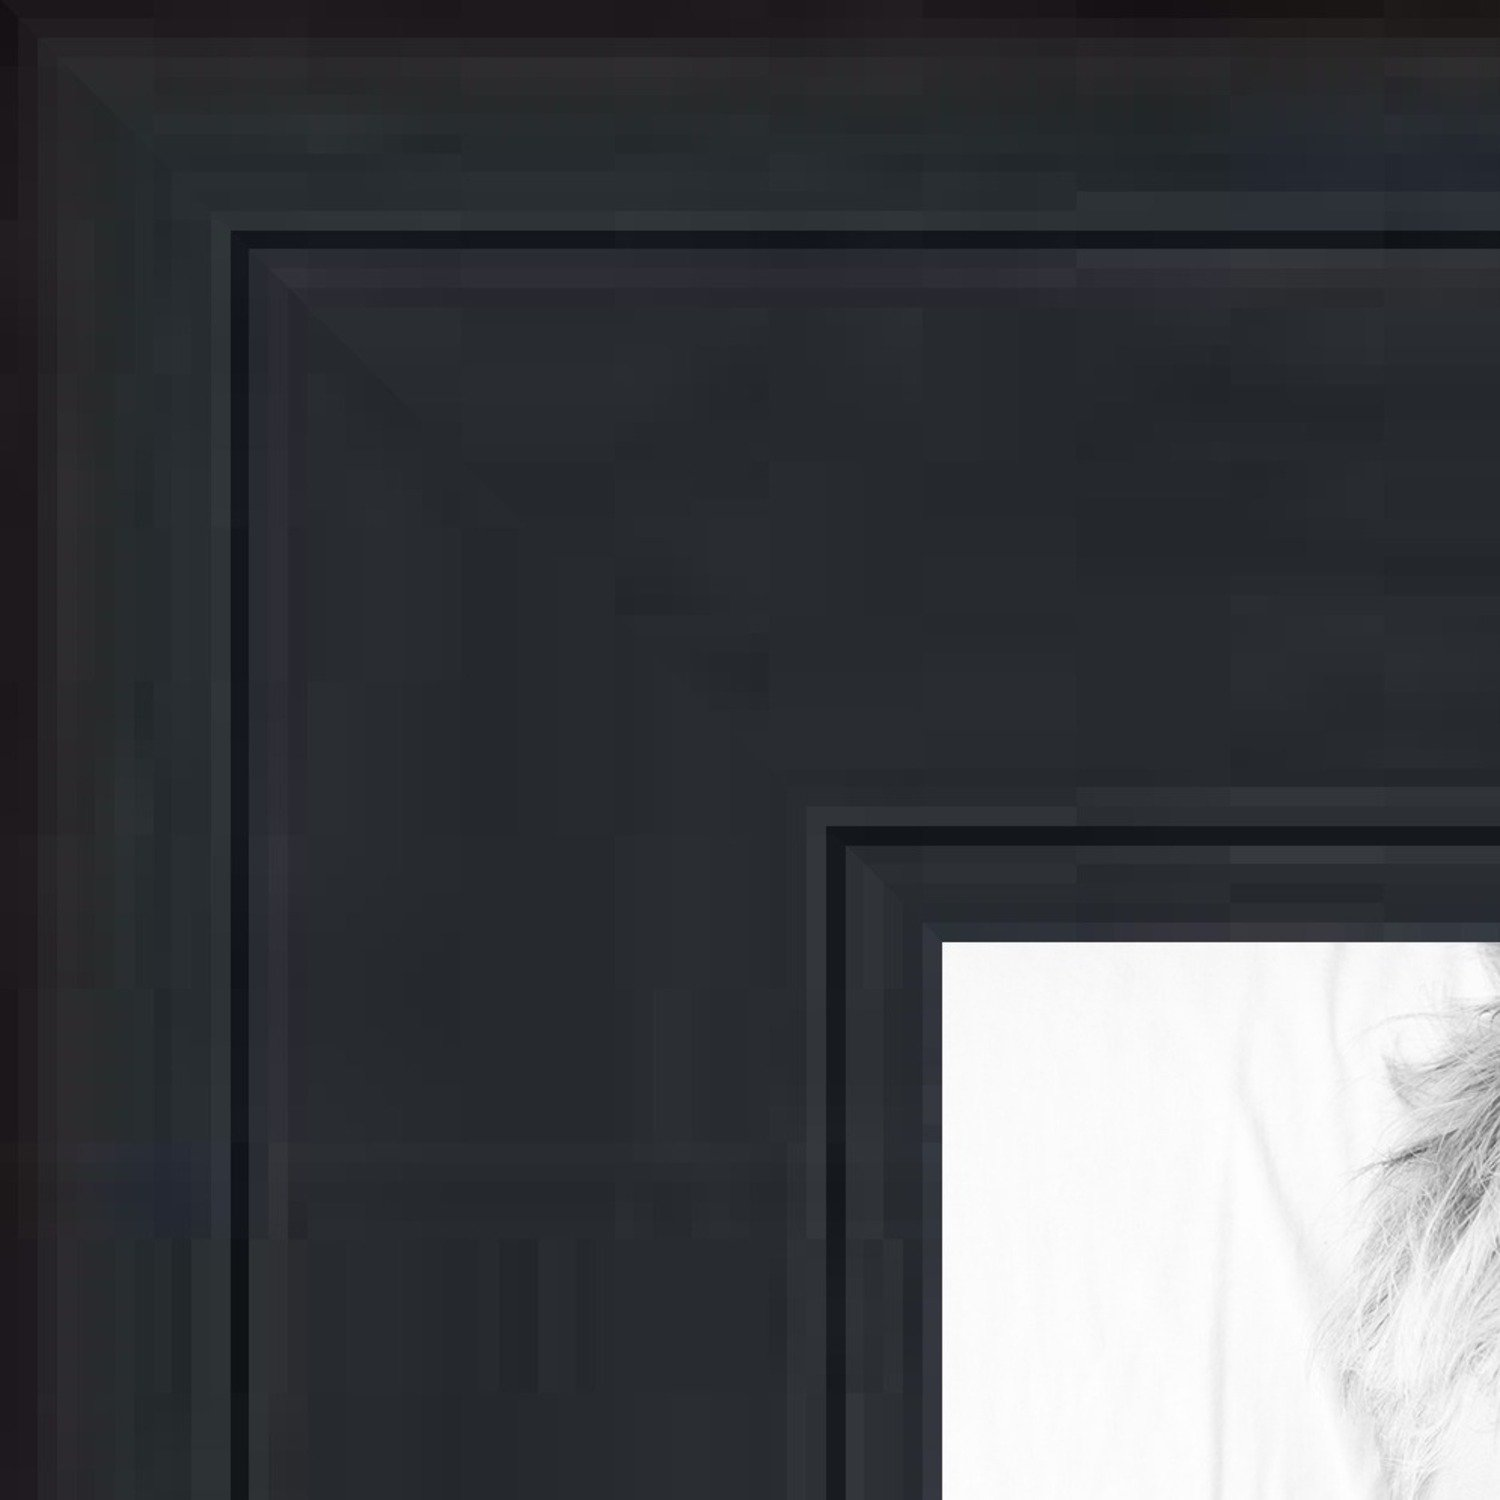 ArtToFrames 10x13 inch Black Stain on Pine Wood Picture Frame, WOM0066-80206-YBLK-10x13